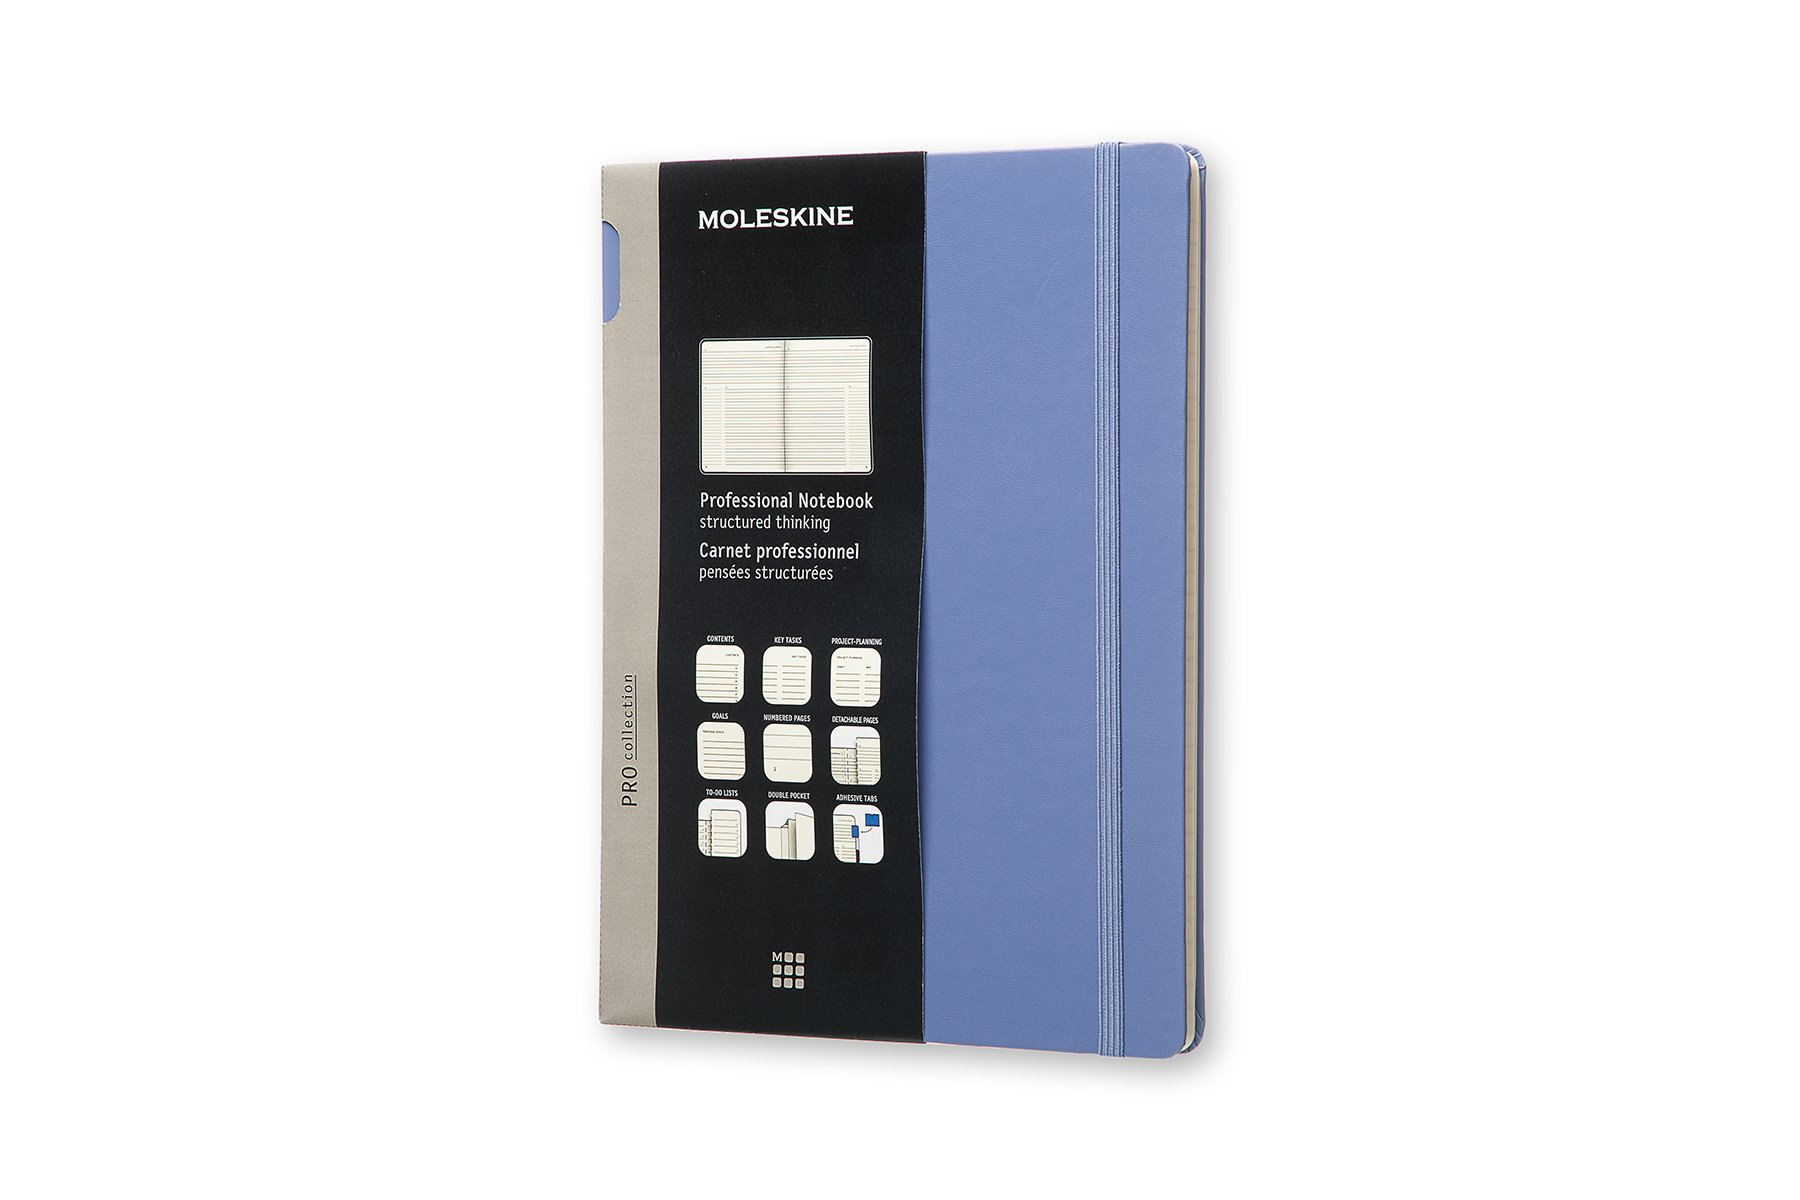 Moleskine Pro Hard Cover Notebook, Professional, XL Lavender